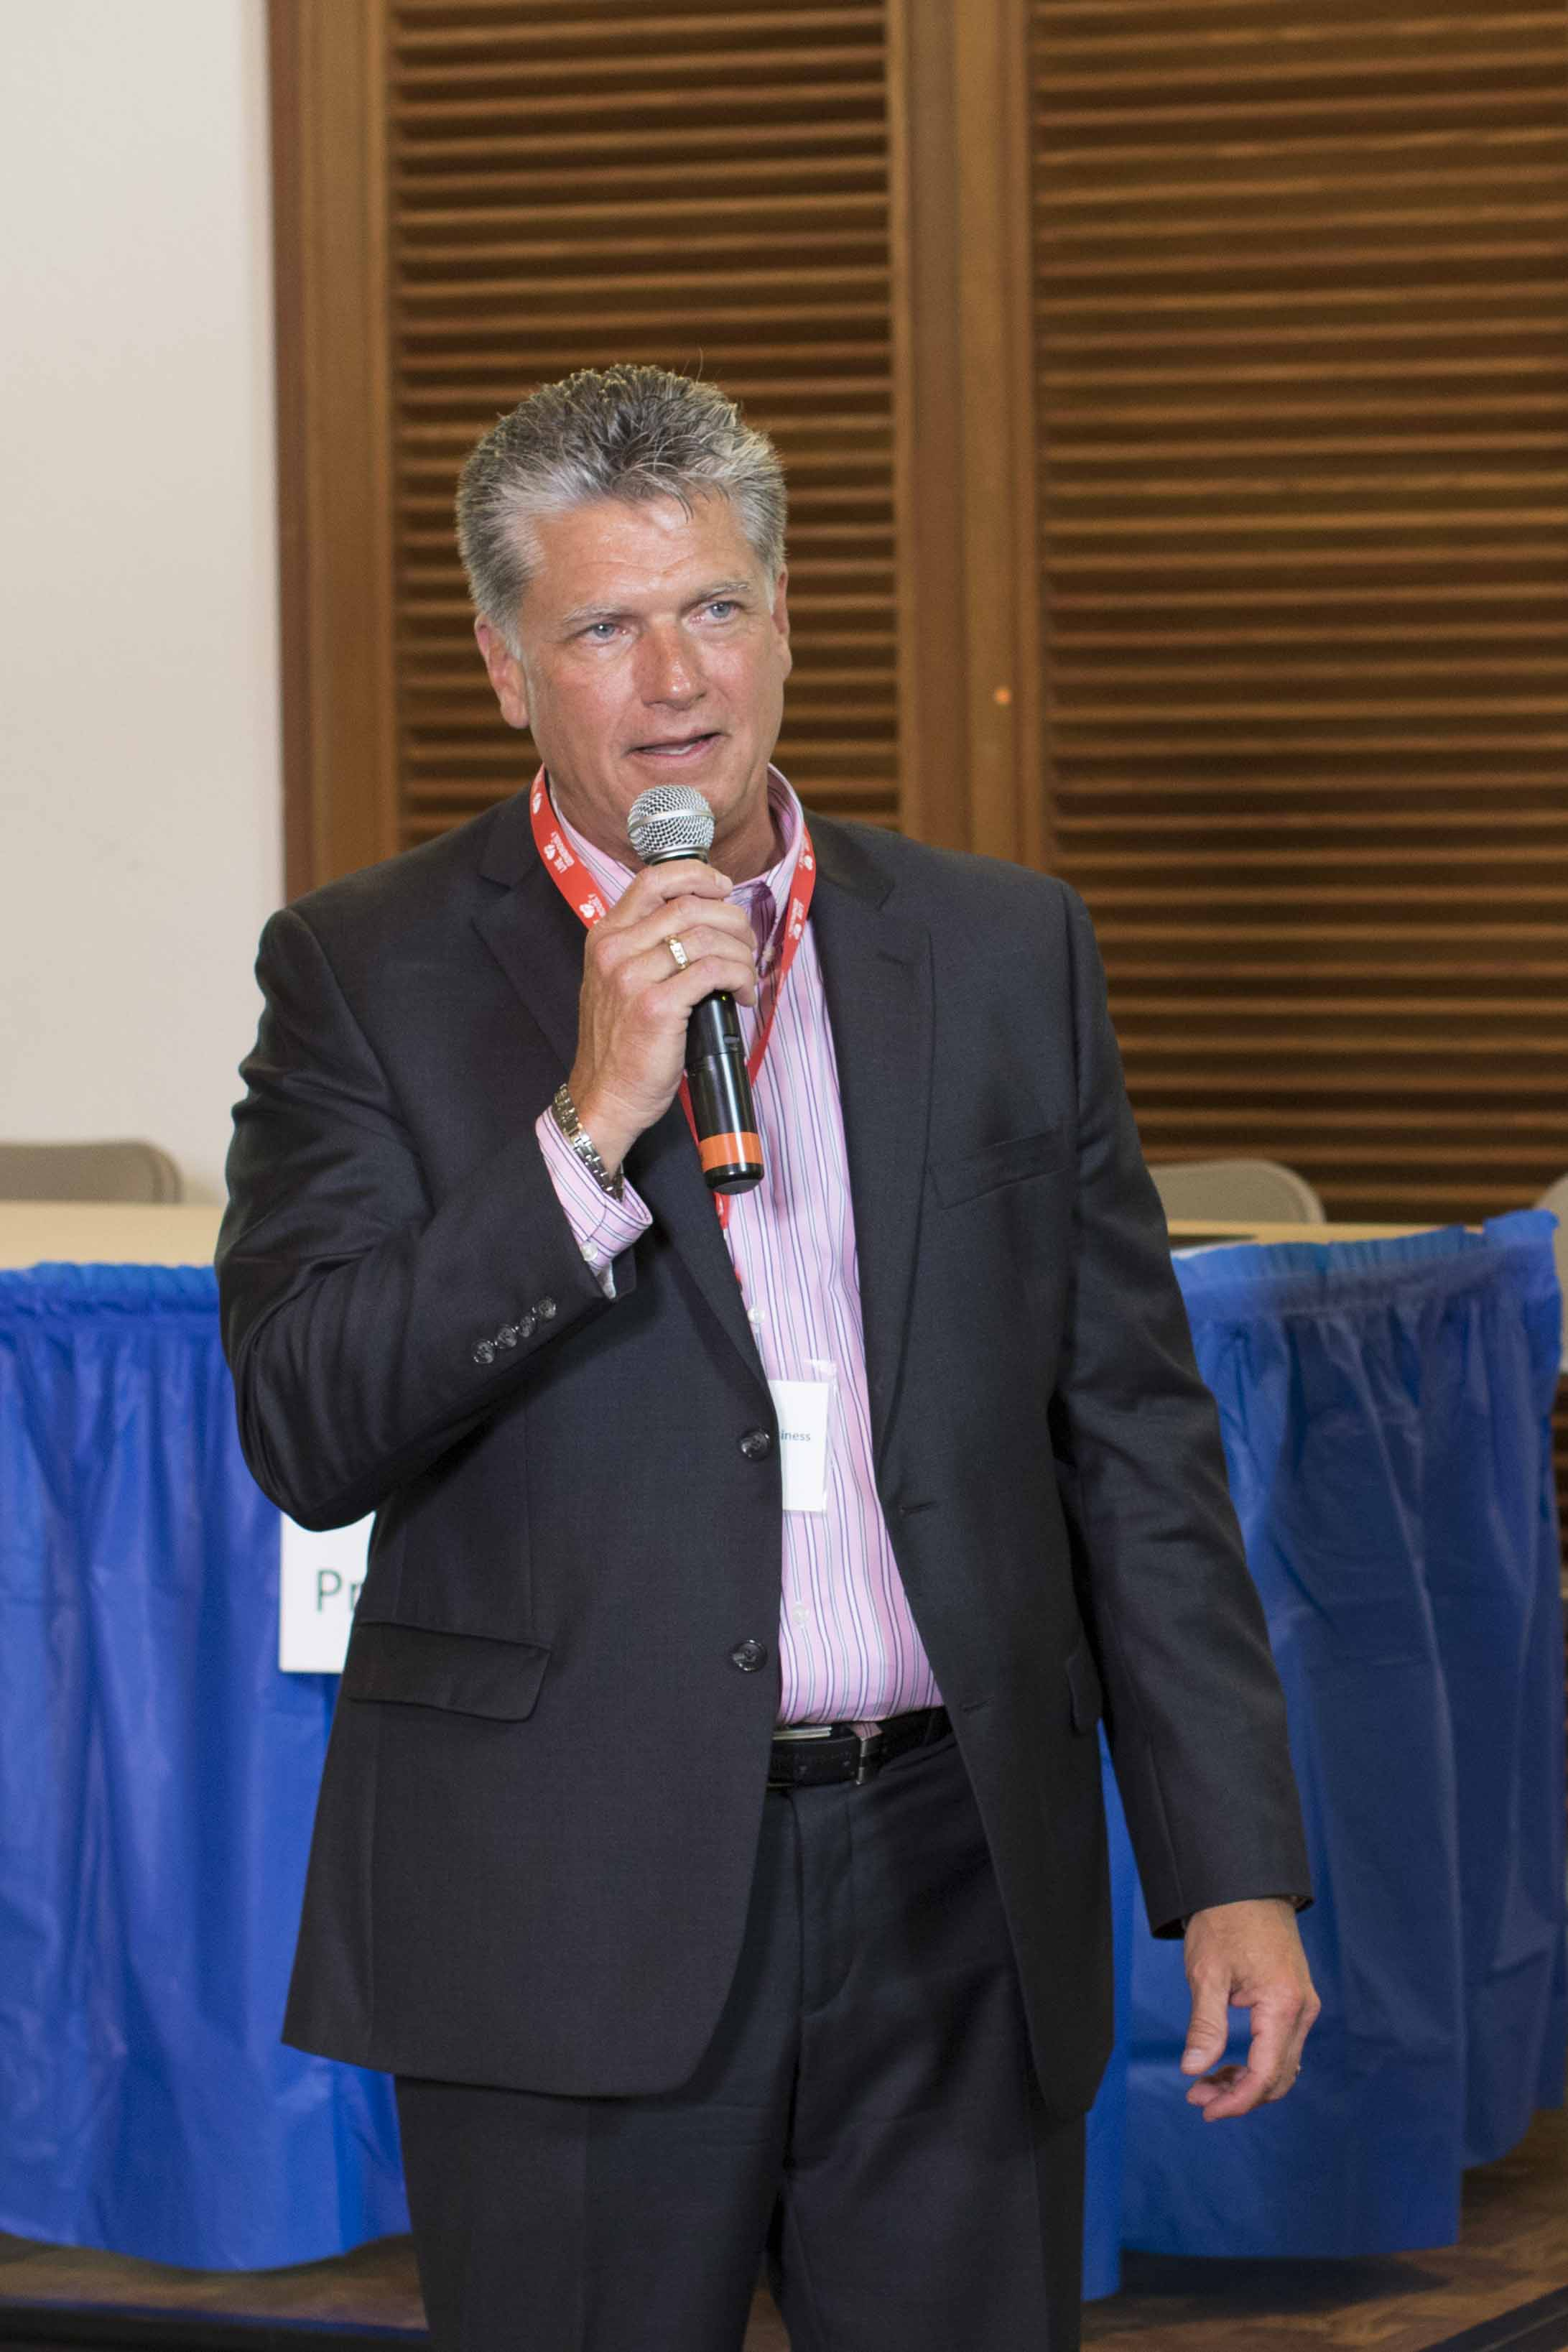 Bob Willbanks speaking at an event.